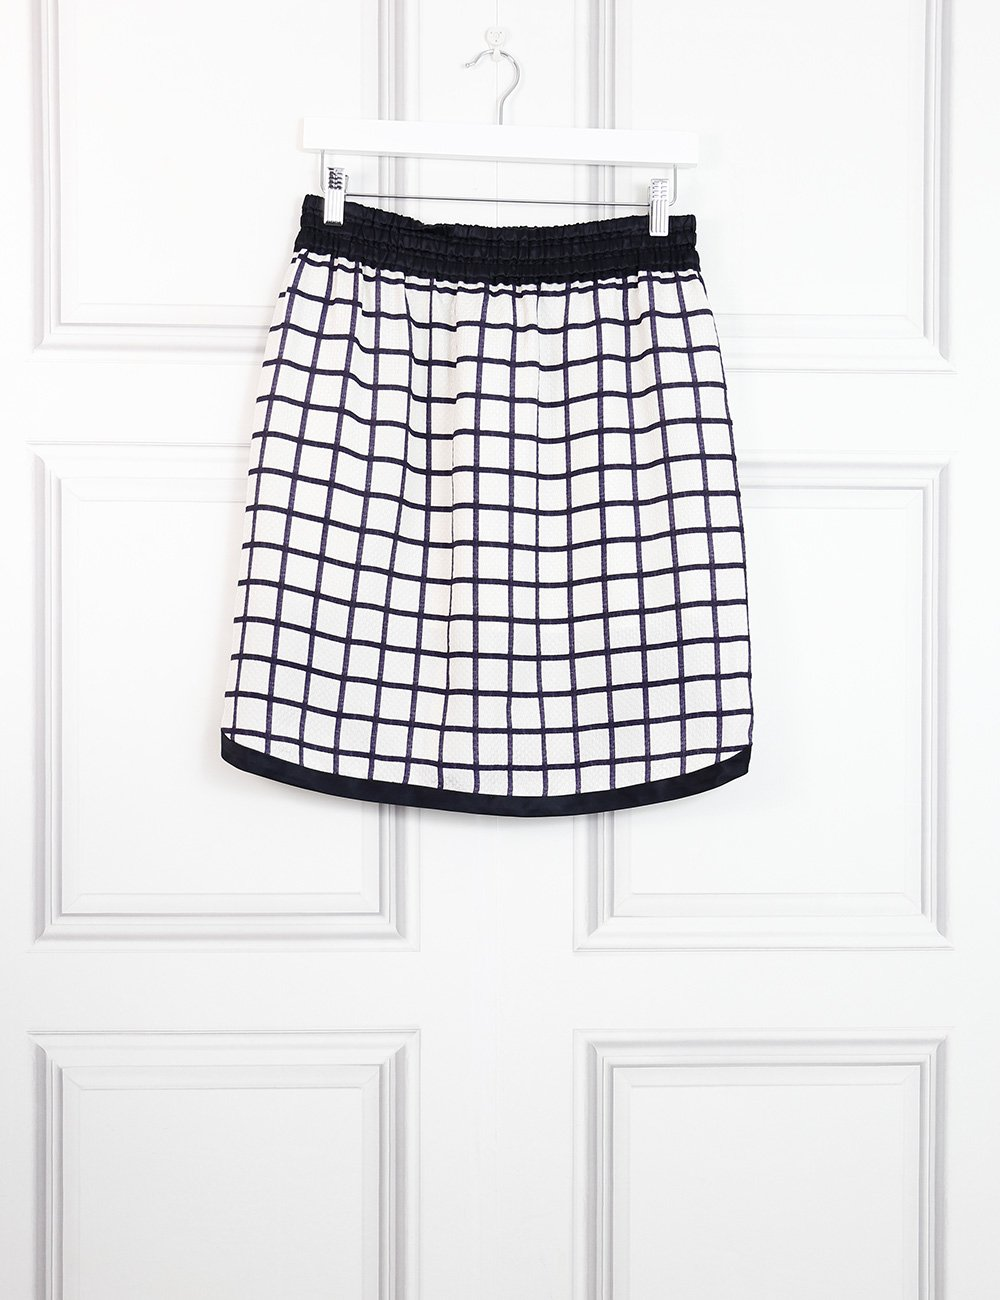 Isabel Marant Etoile multicolour elastic silk skirt with check print 10UK- My Wardrobe Mistakes